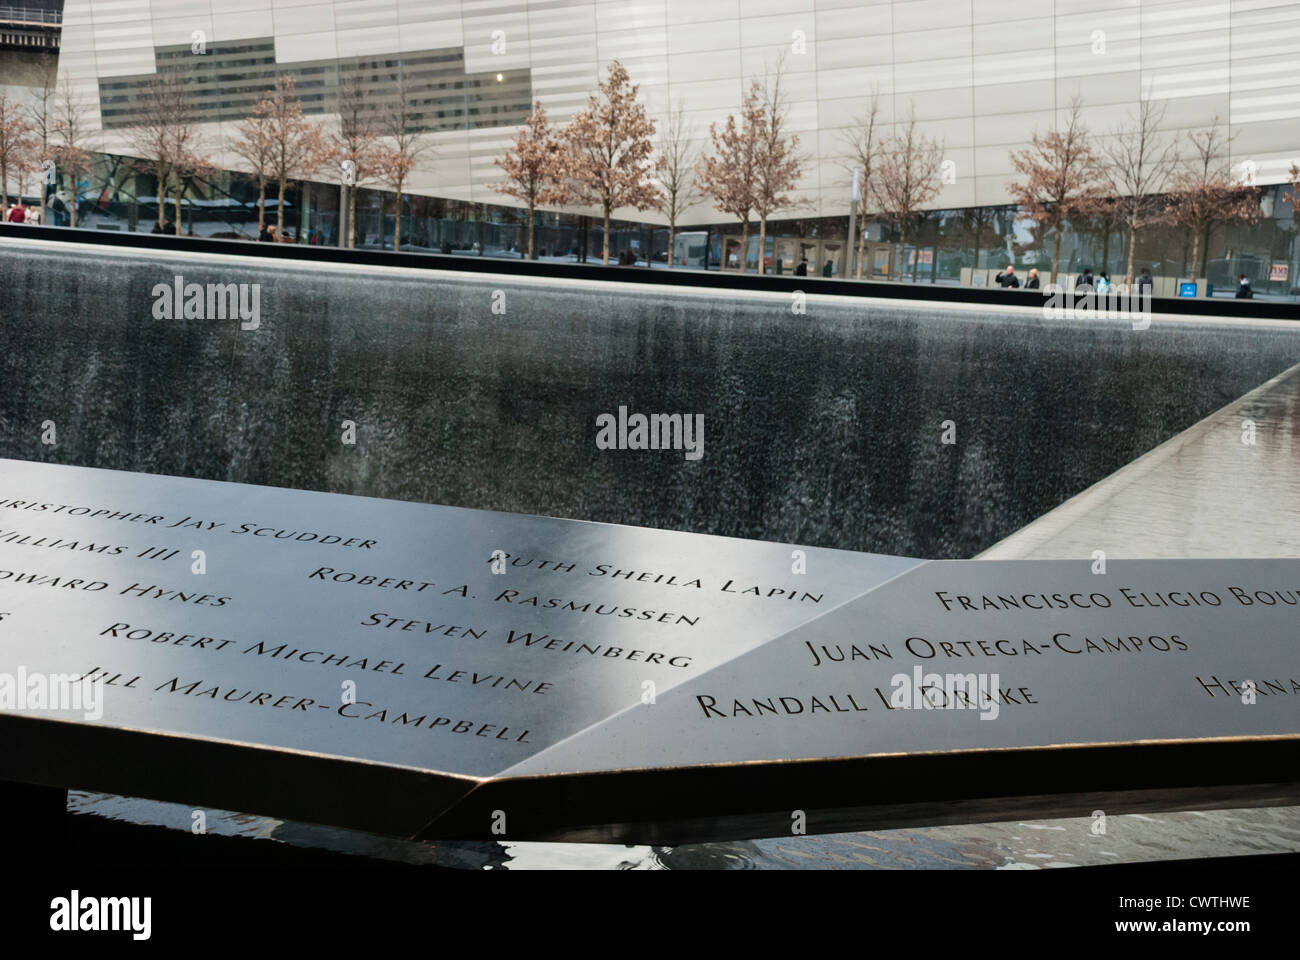 National September 11 Memorial showing names on the parapet surrounding the pool and the Museum in the background. - Stock Image